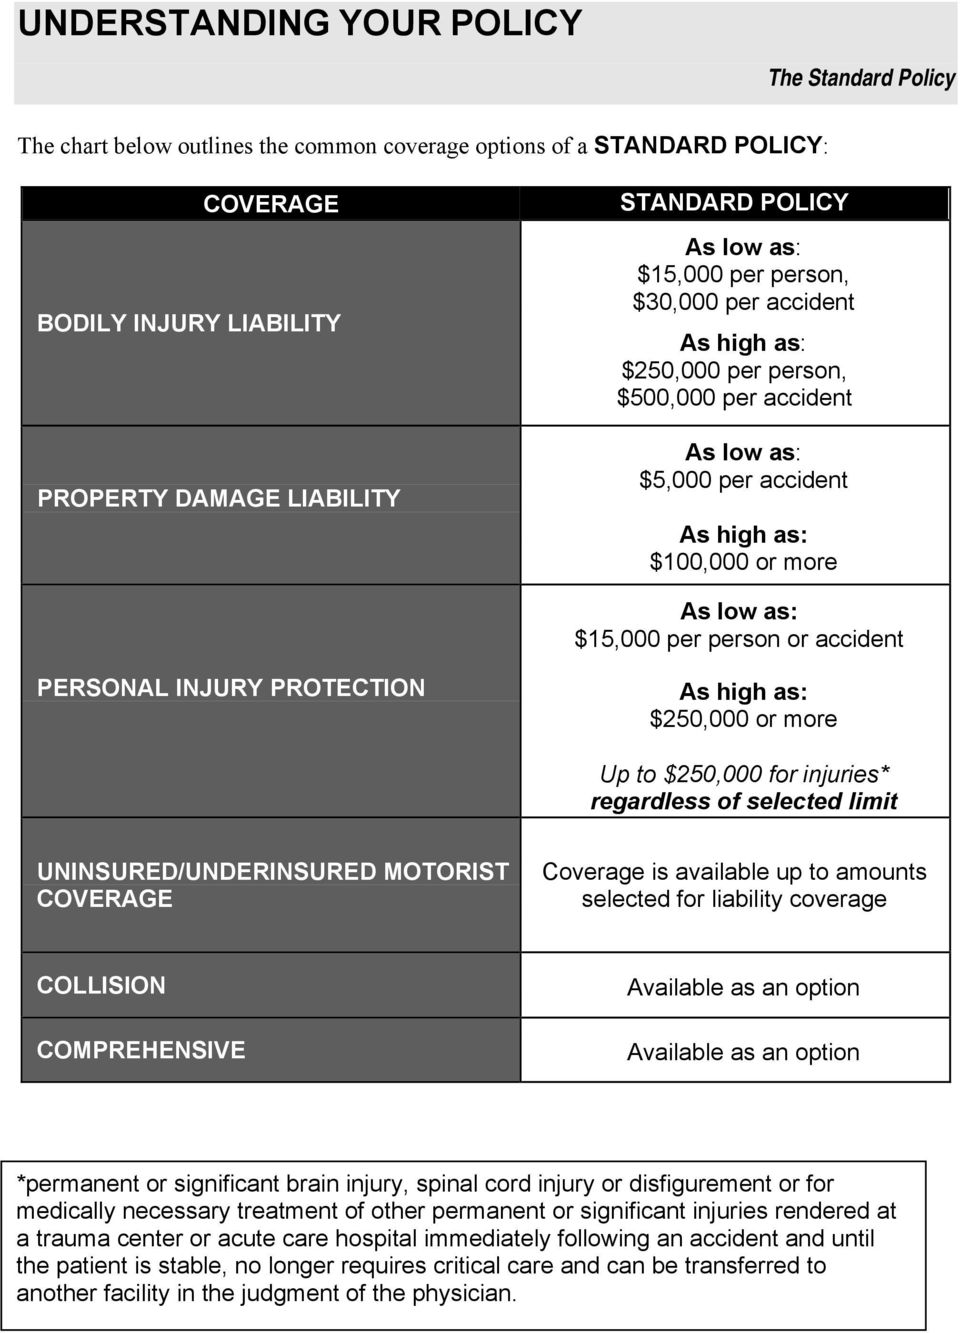 accident PERSONAL INJURY PROTECTION As high as: $250,000 or more Up to $250,000 for injuries* regardless of selected limit UNINSURED/UNDERINSURED MOTORIST COVERAGE Coverage is available up to amounts